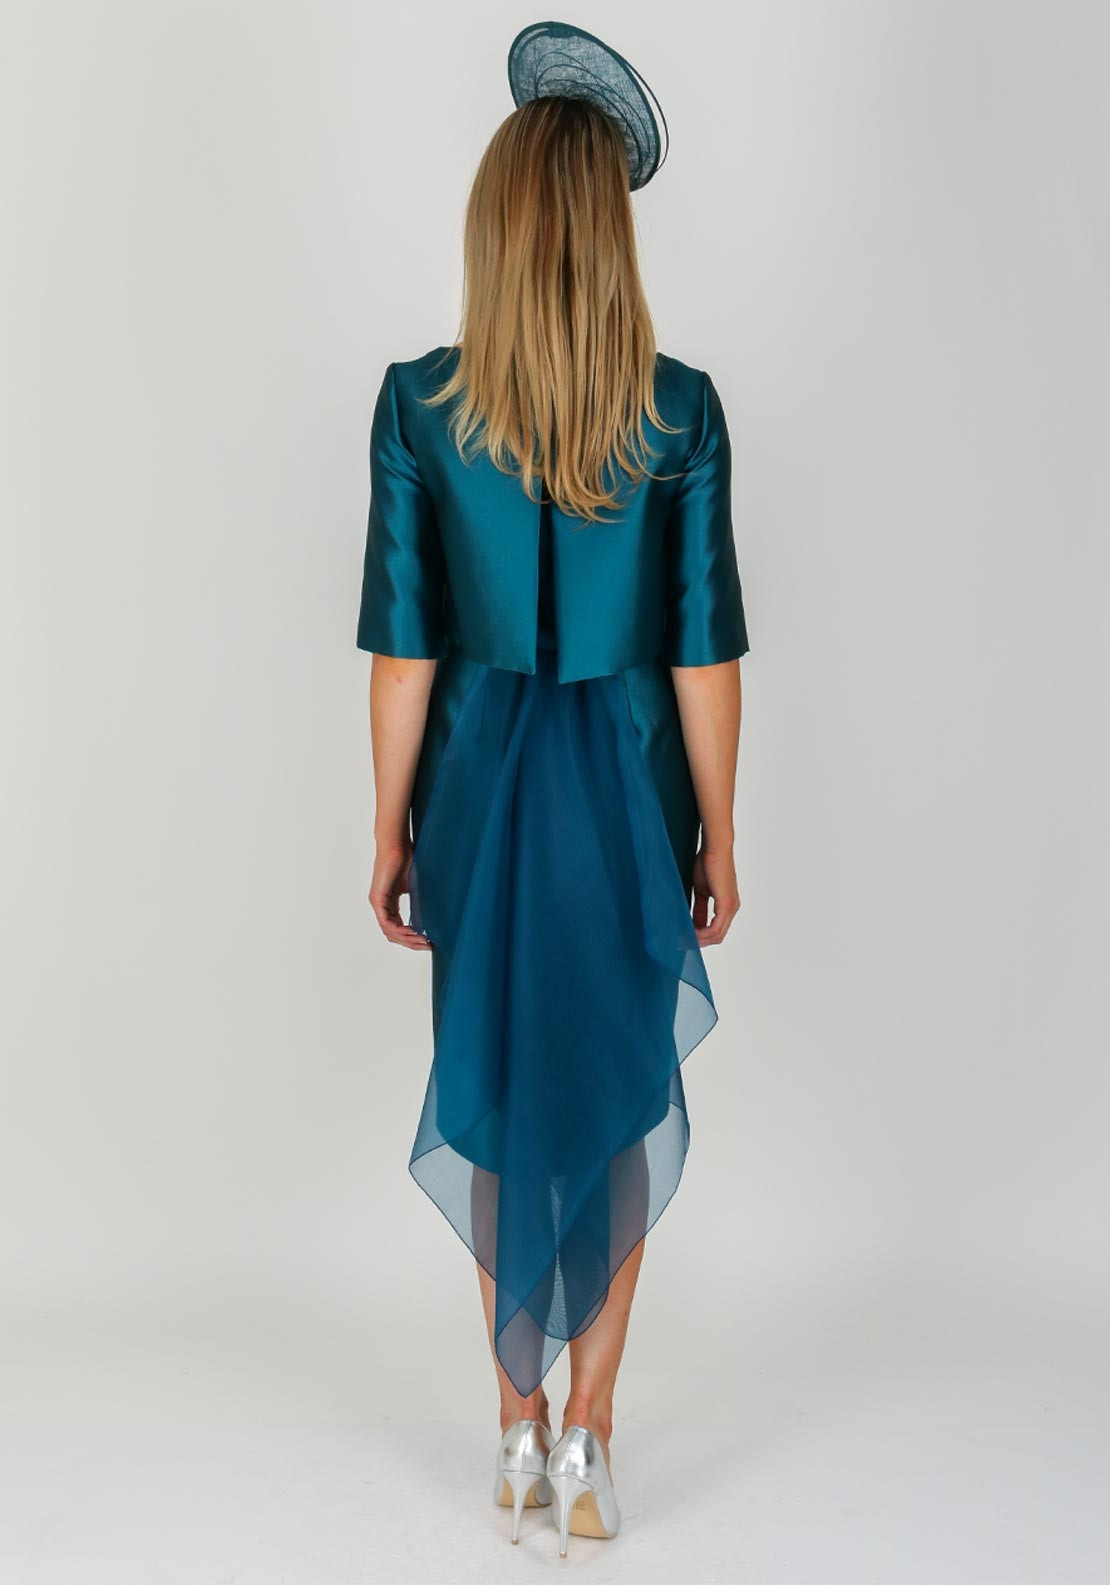 Fely Campo Chiffon Bustle Dress & Jacket, Teal Blue